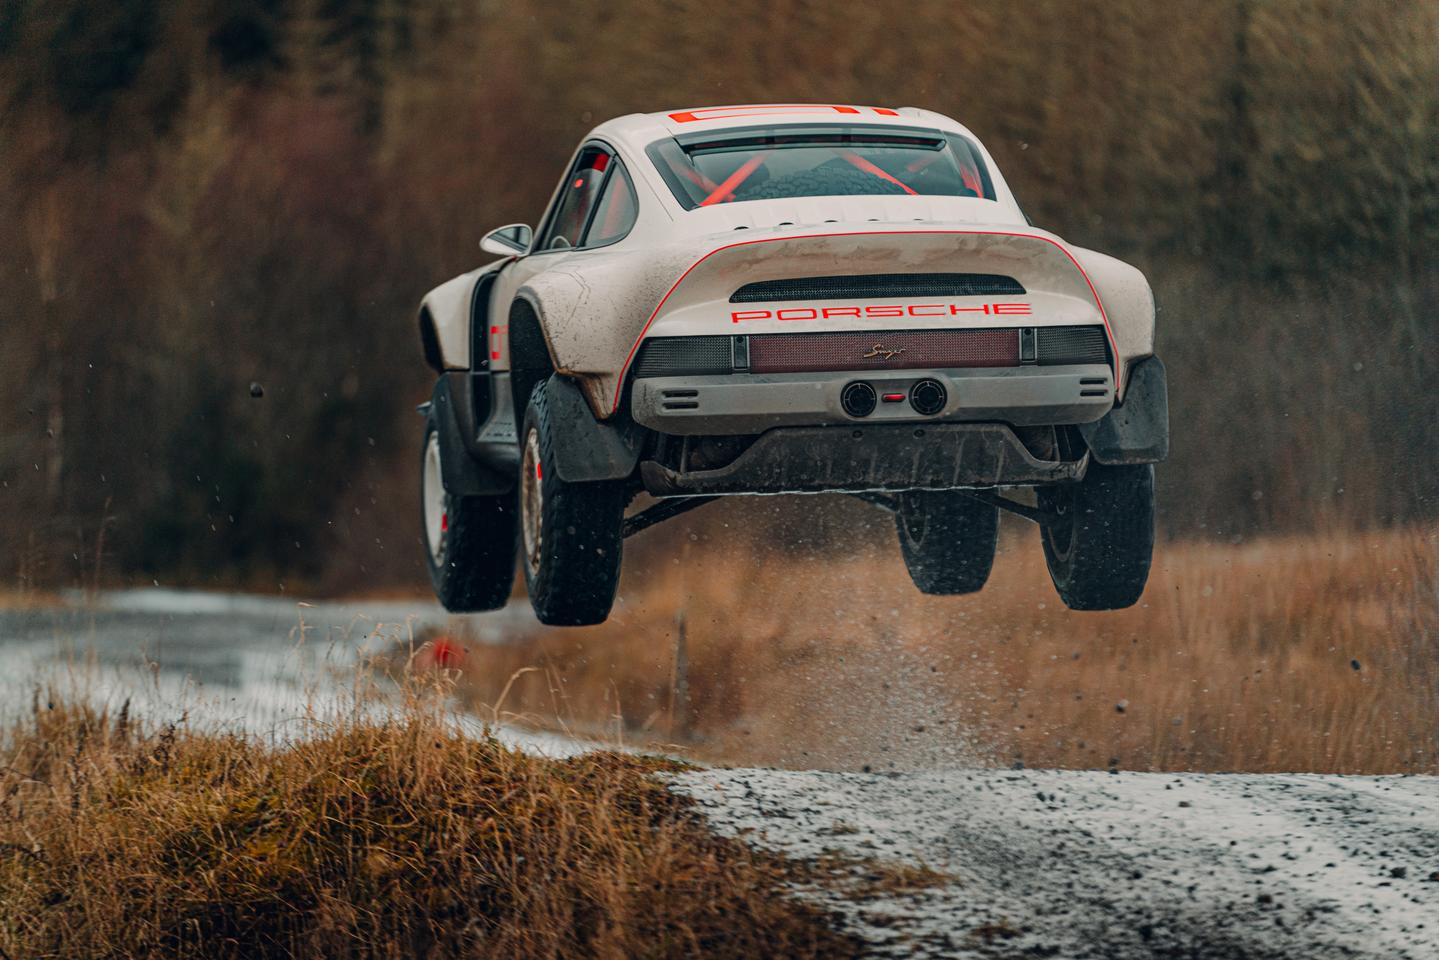 The Singer Porsche All-Terrain Competition Study sends Singer's restomod business soaring forward